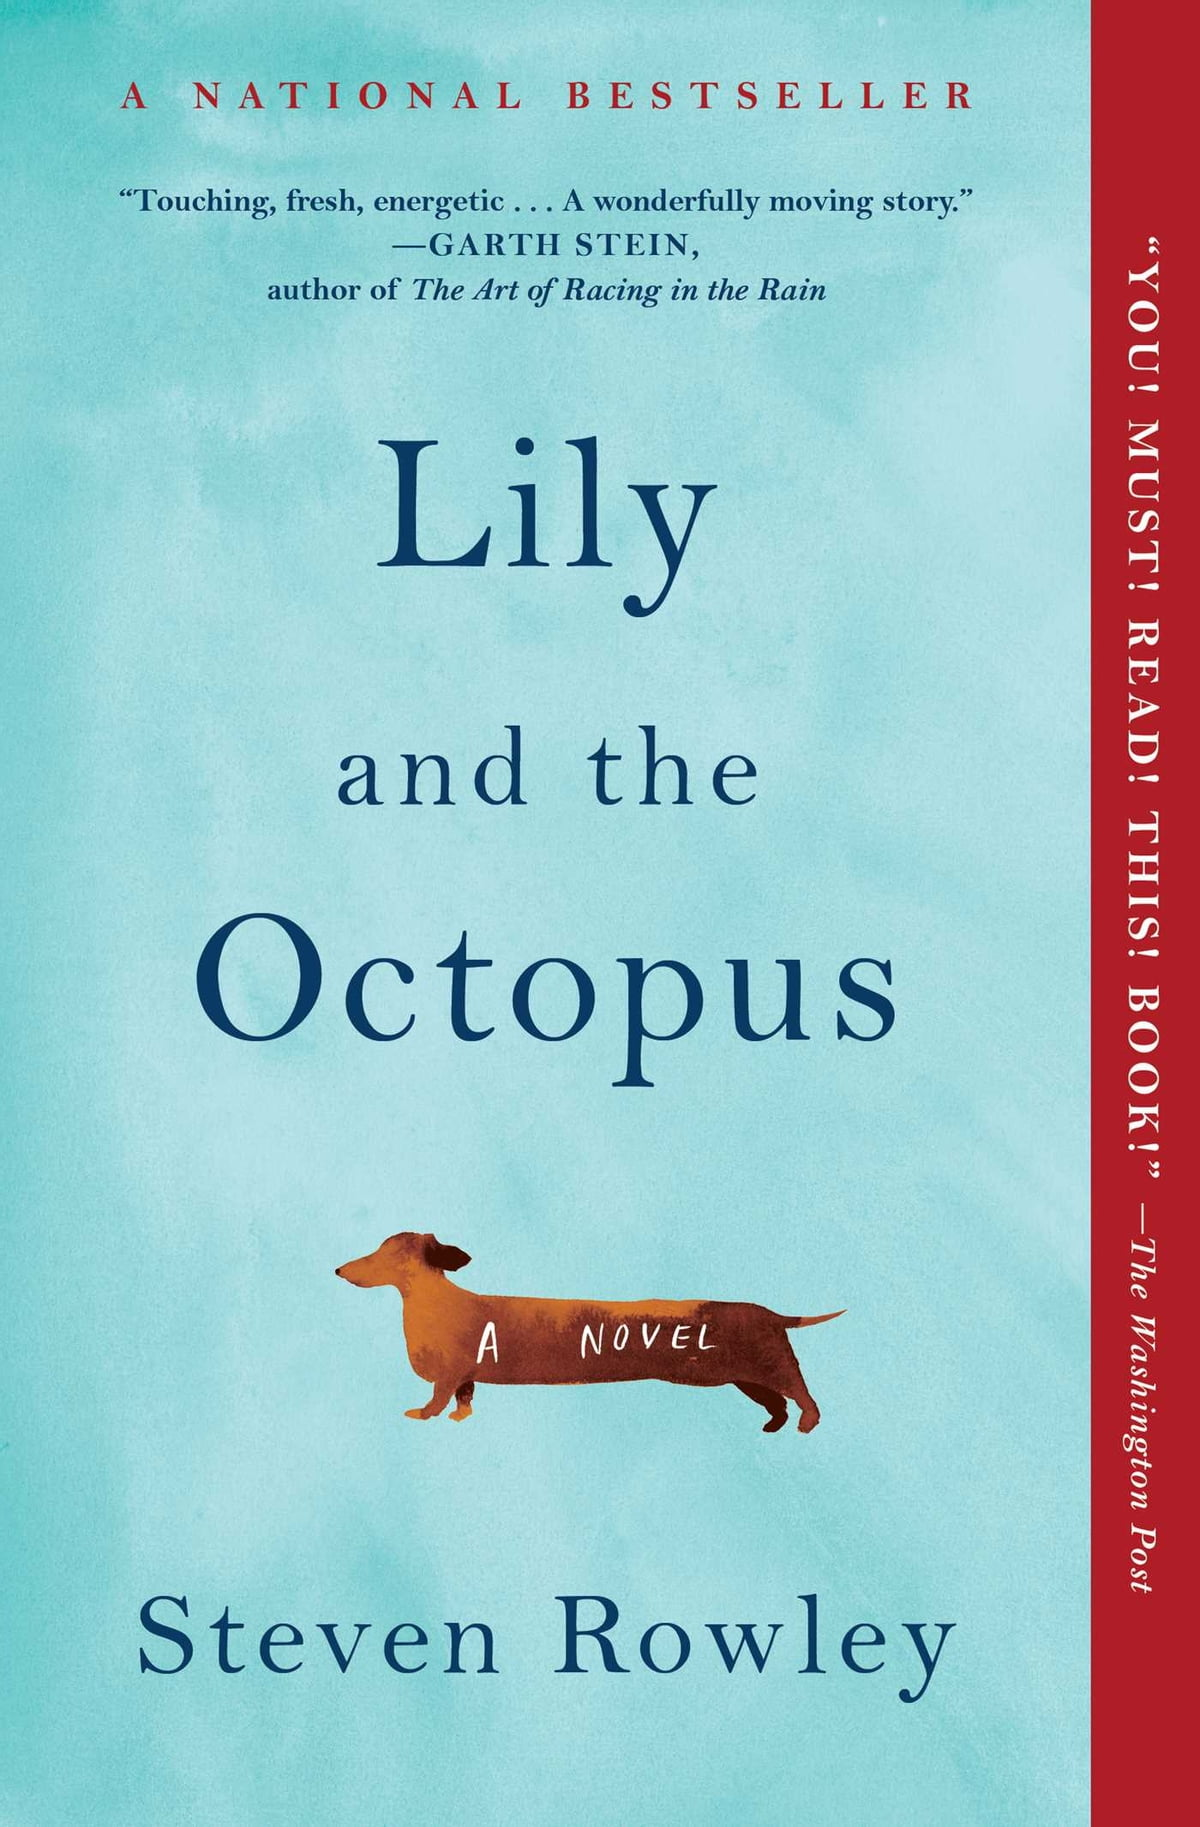 Lily and the Octopus eBook by Steven Rowley - 9781501126246 ...